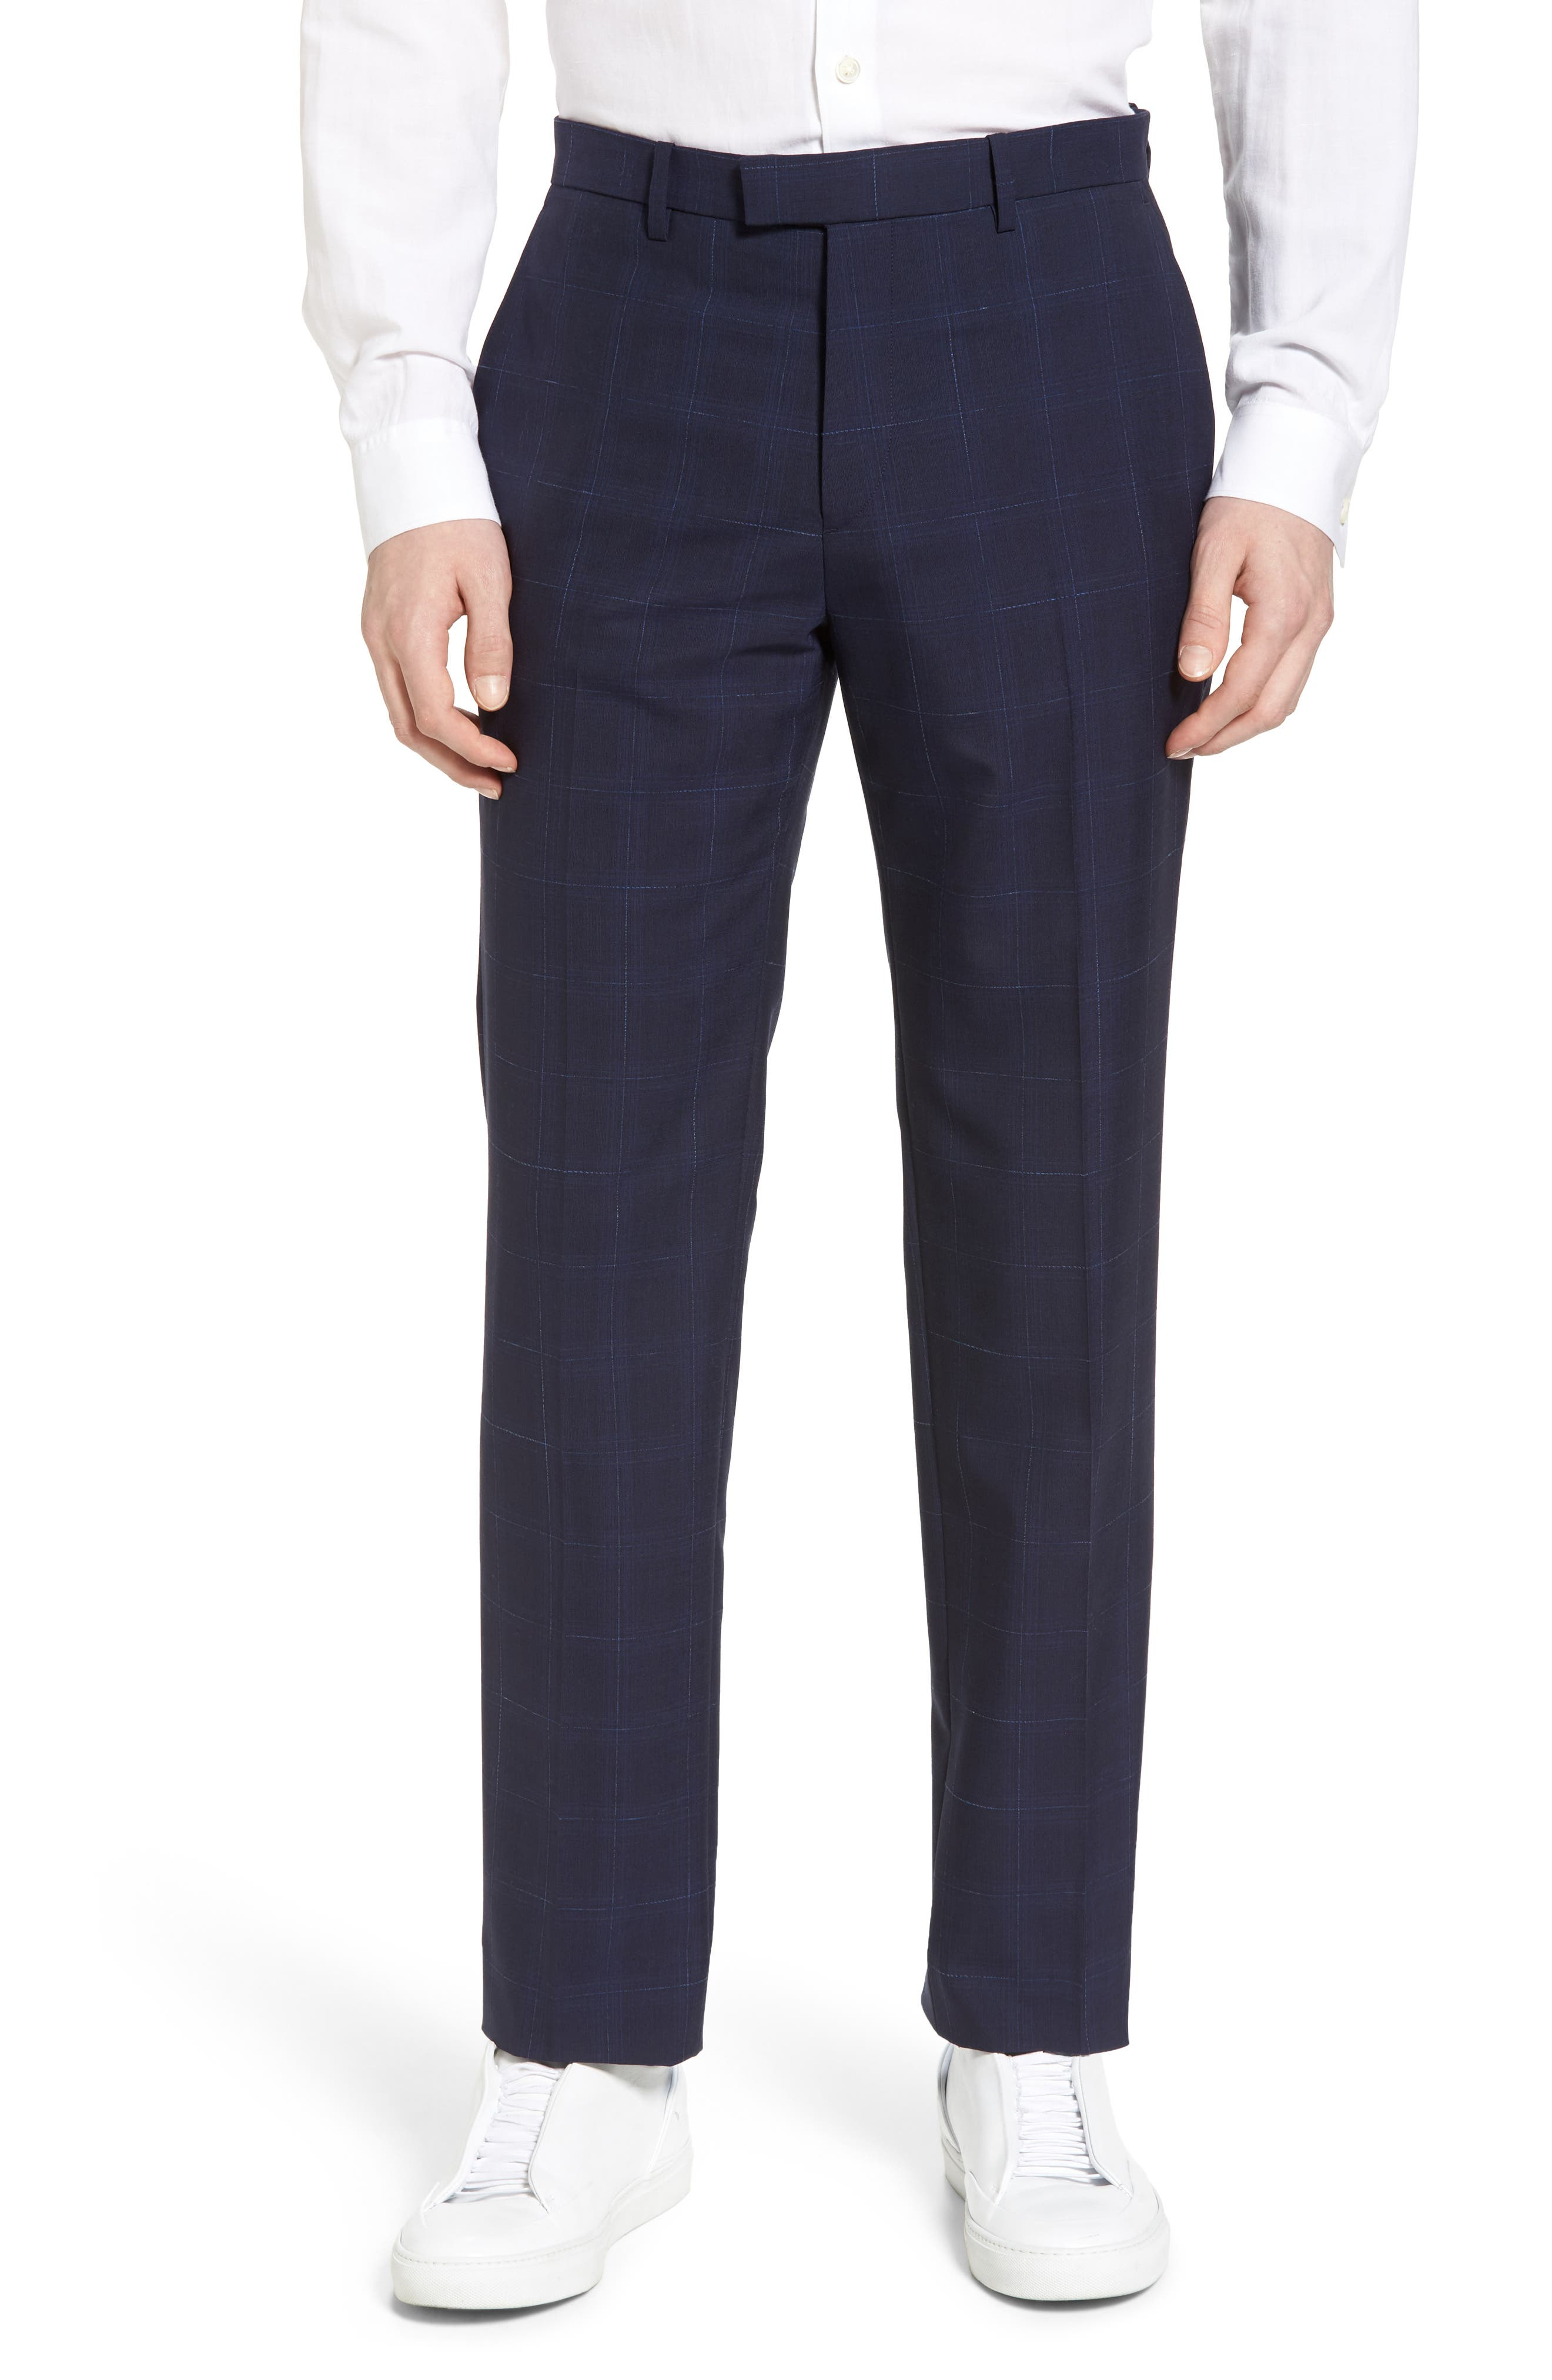 Marlo Flat Front Plaid Wool Trousers,                             Main thumbnail 1, color,                             497